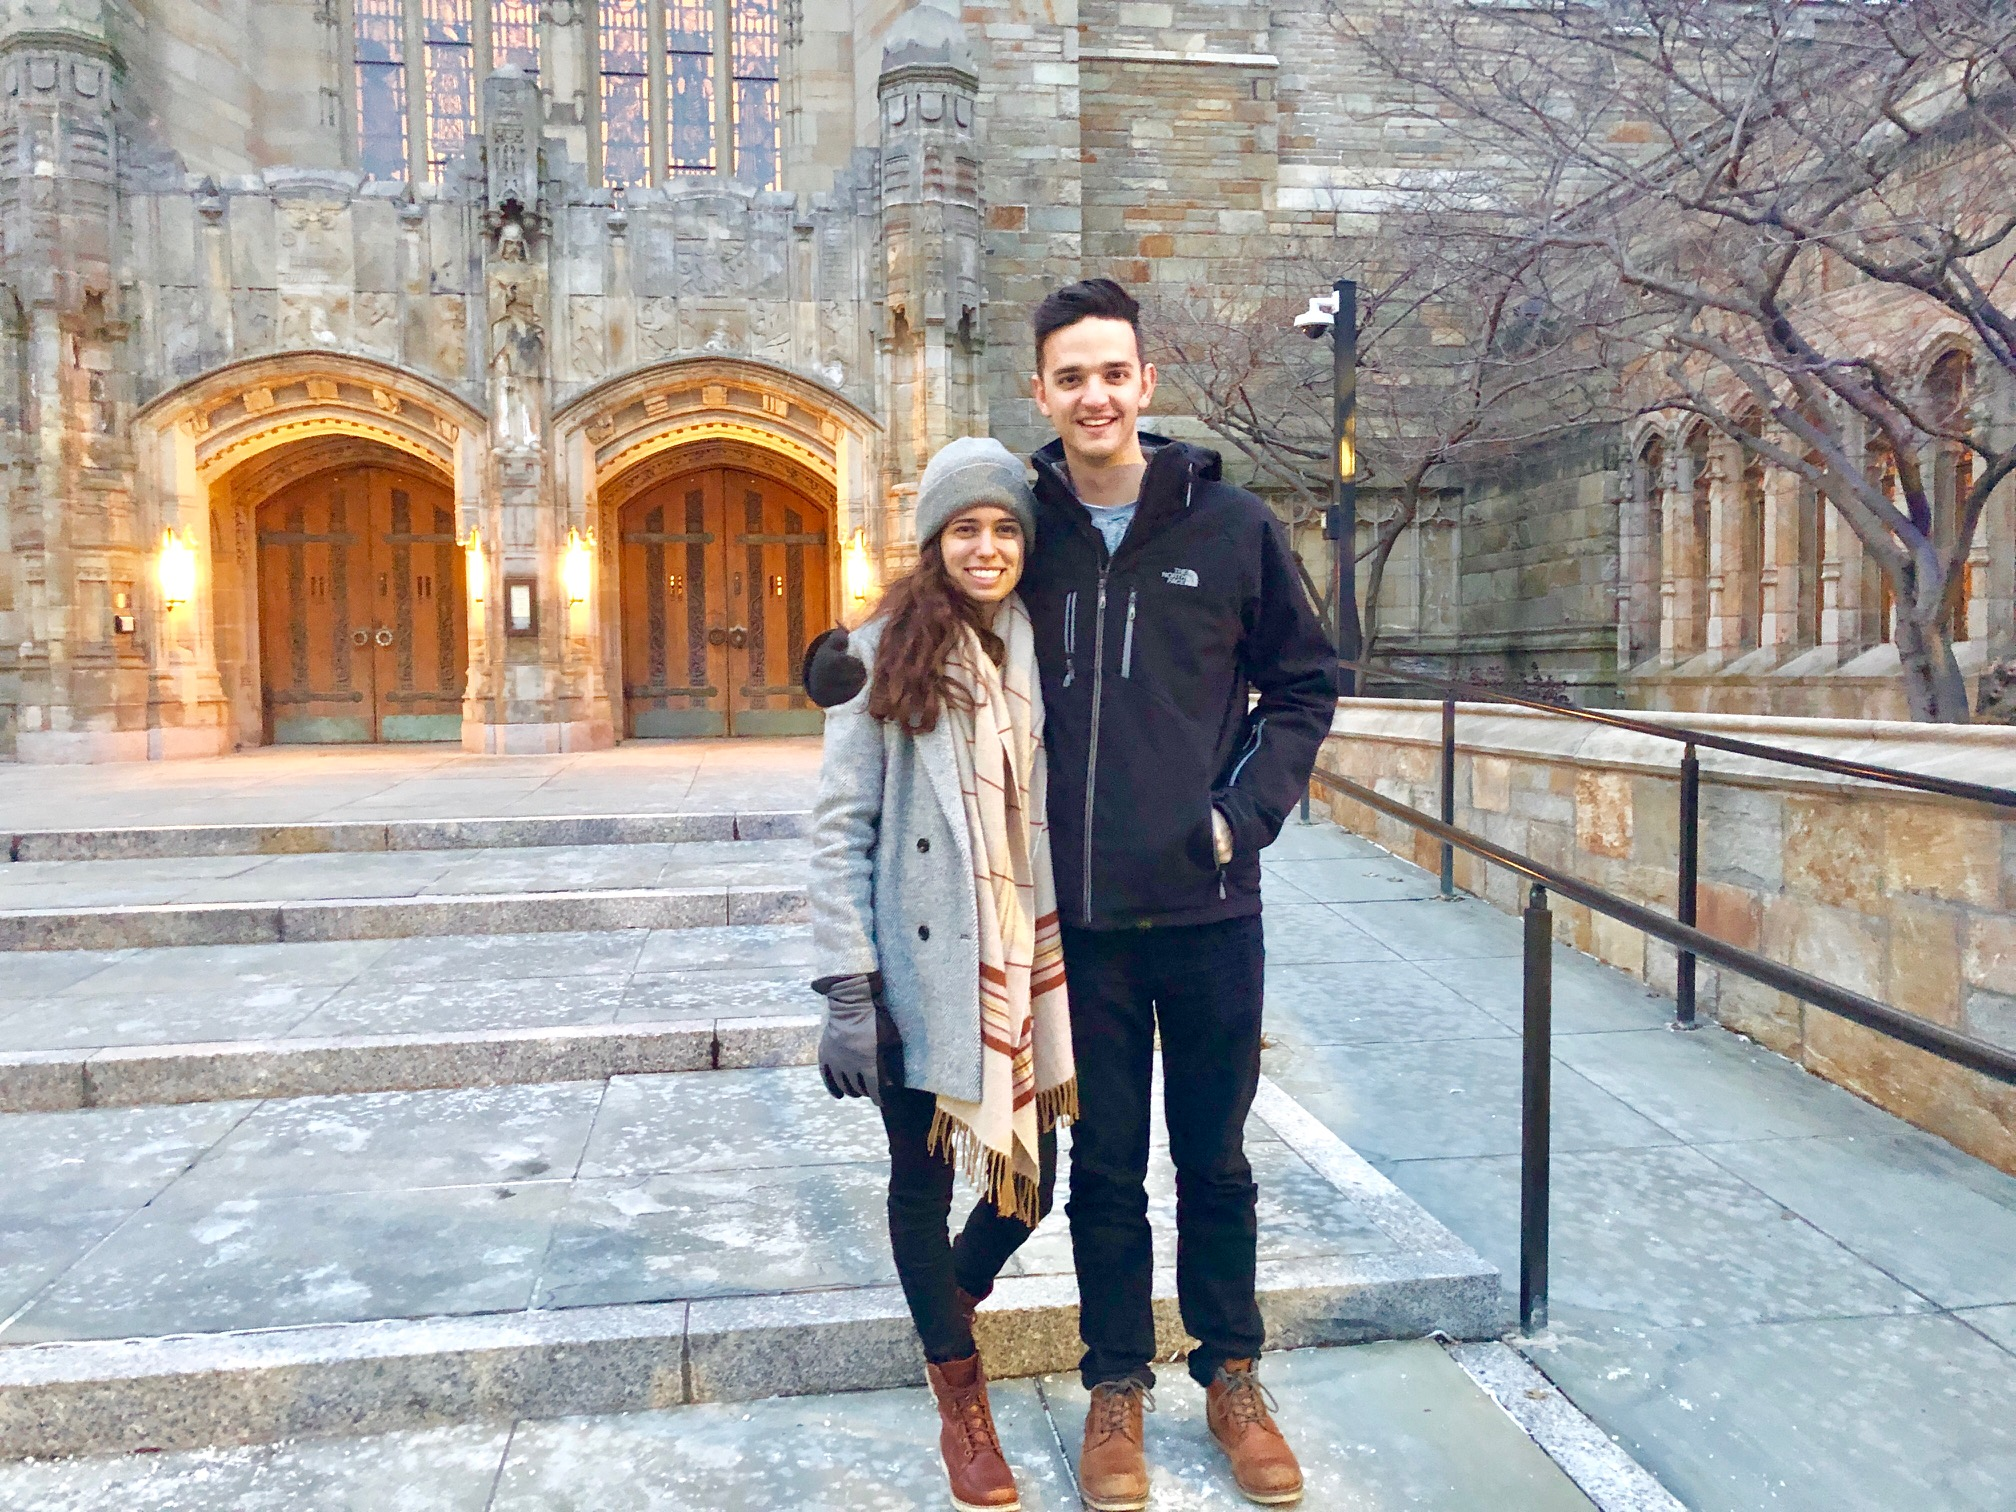 Alex & Bekah visited us from Austin! We spent one afternoon traipsing through New Haven & Yale campus in freezing temps.